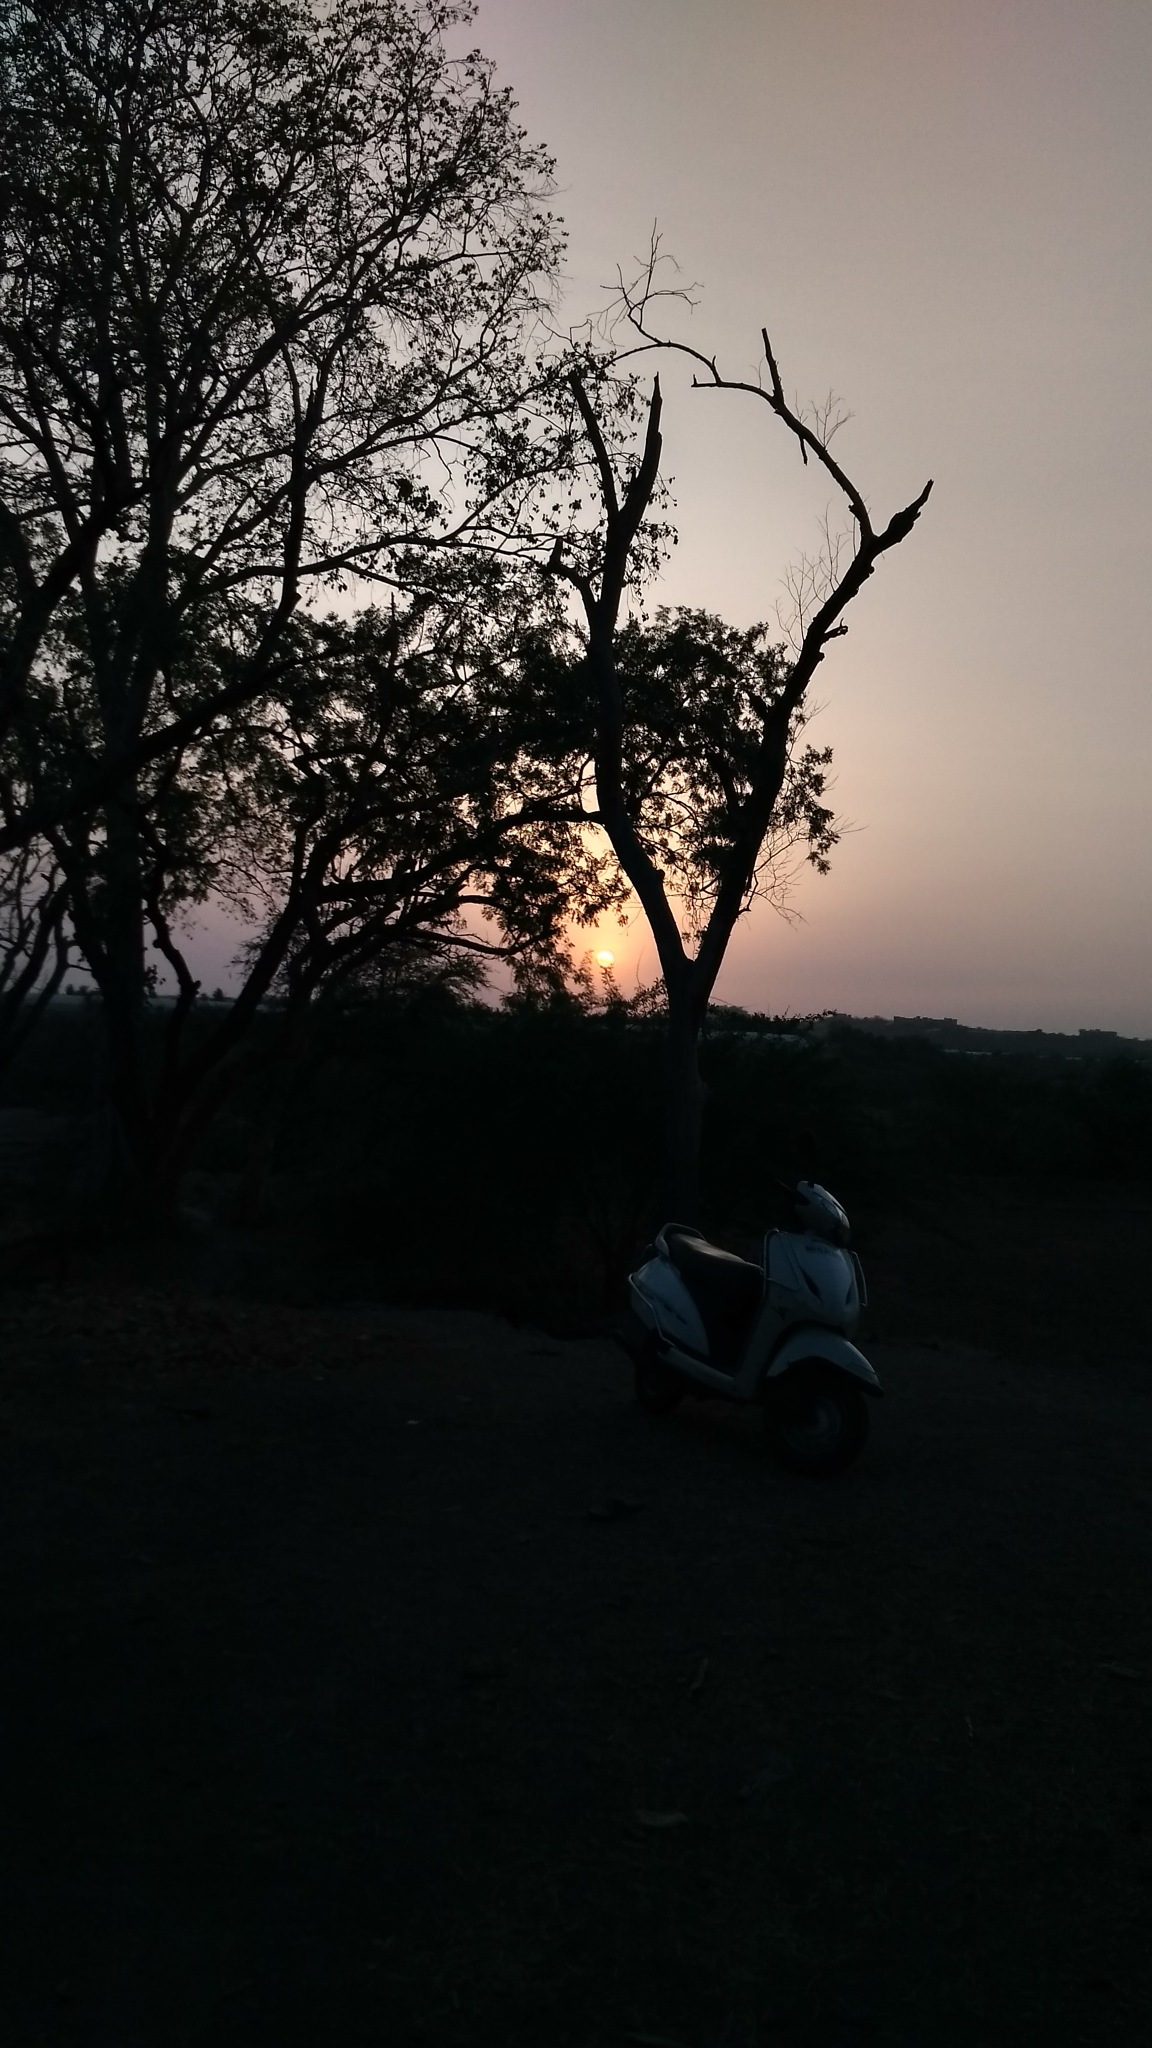 evening scene is the best .❤️ by Abhay g Patil